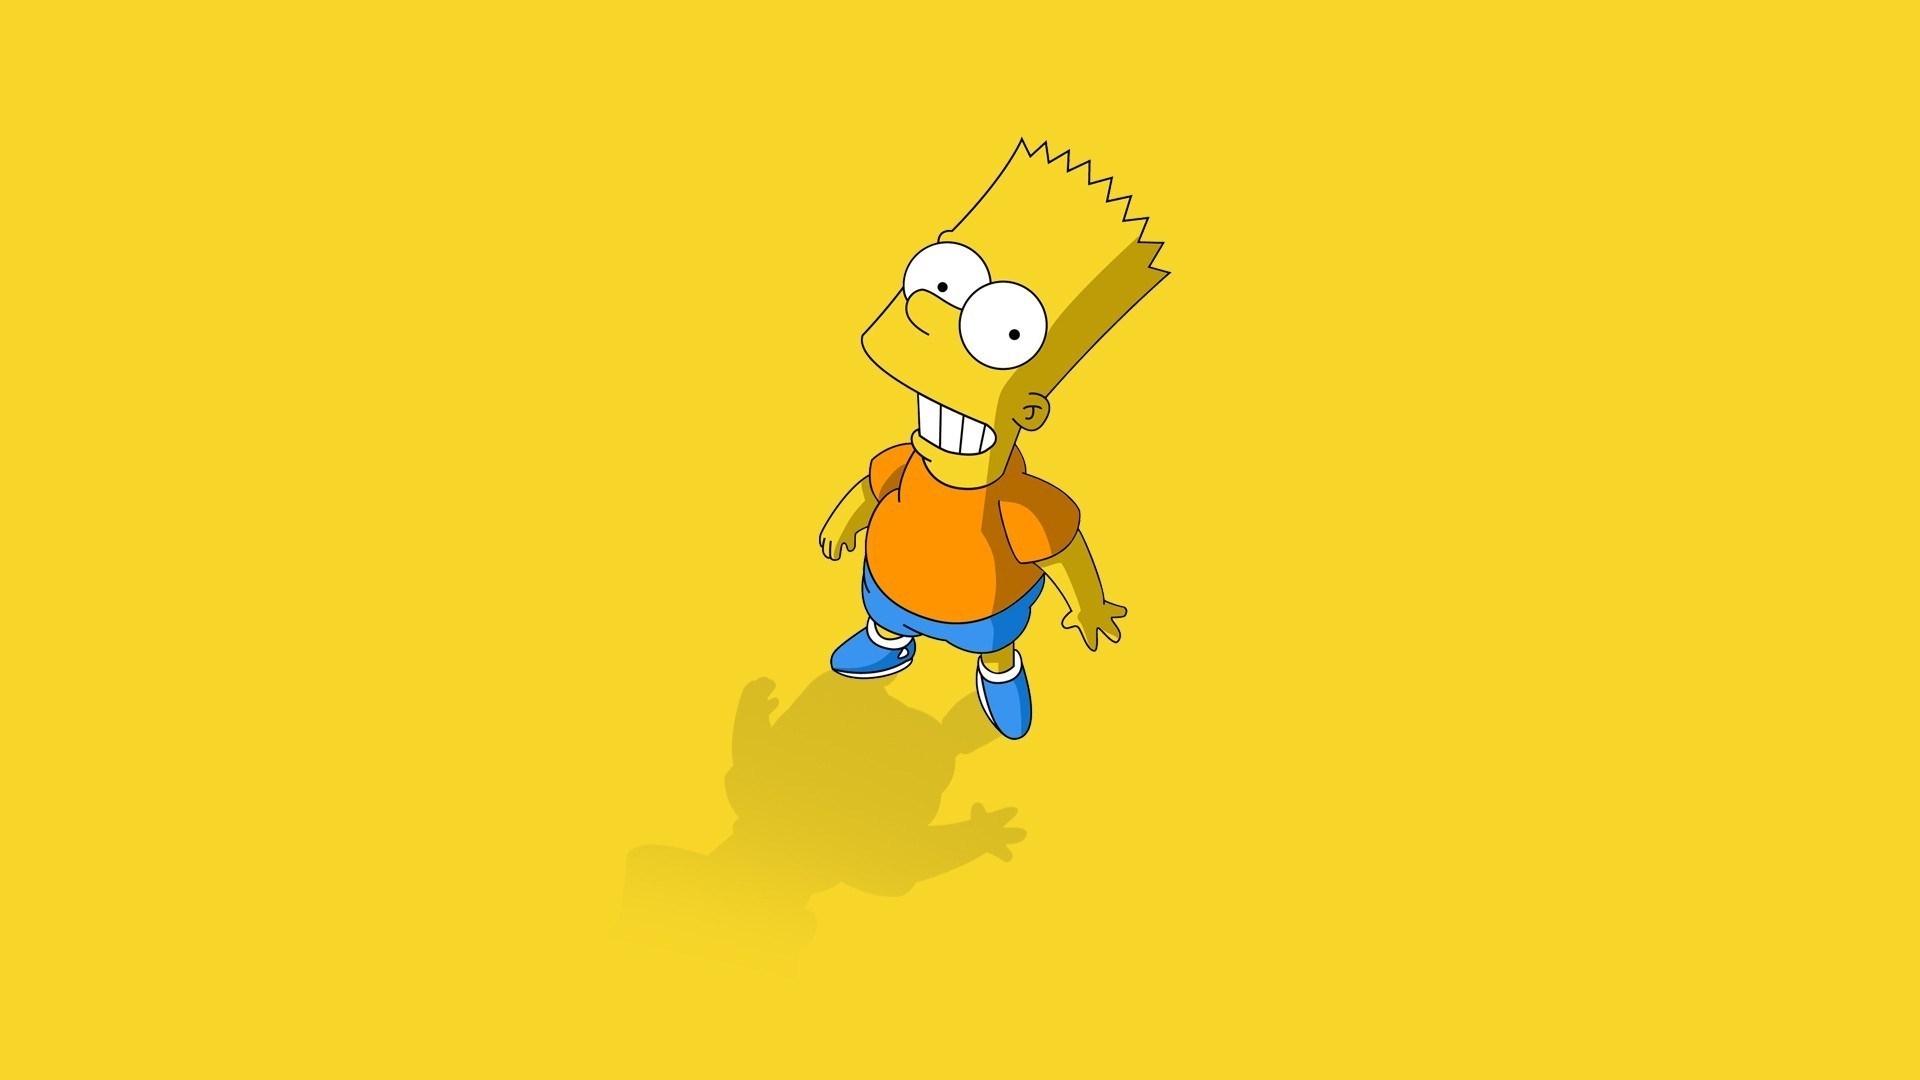 Funny Young Homer Simpsons Hd Iphone Wallpaper Iphone Hd 1920x1080